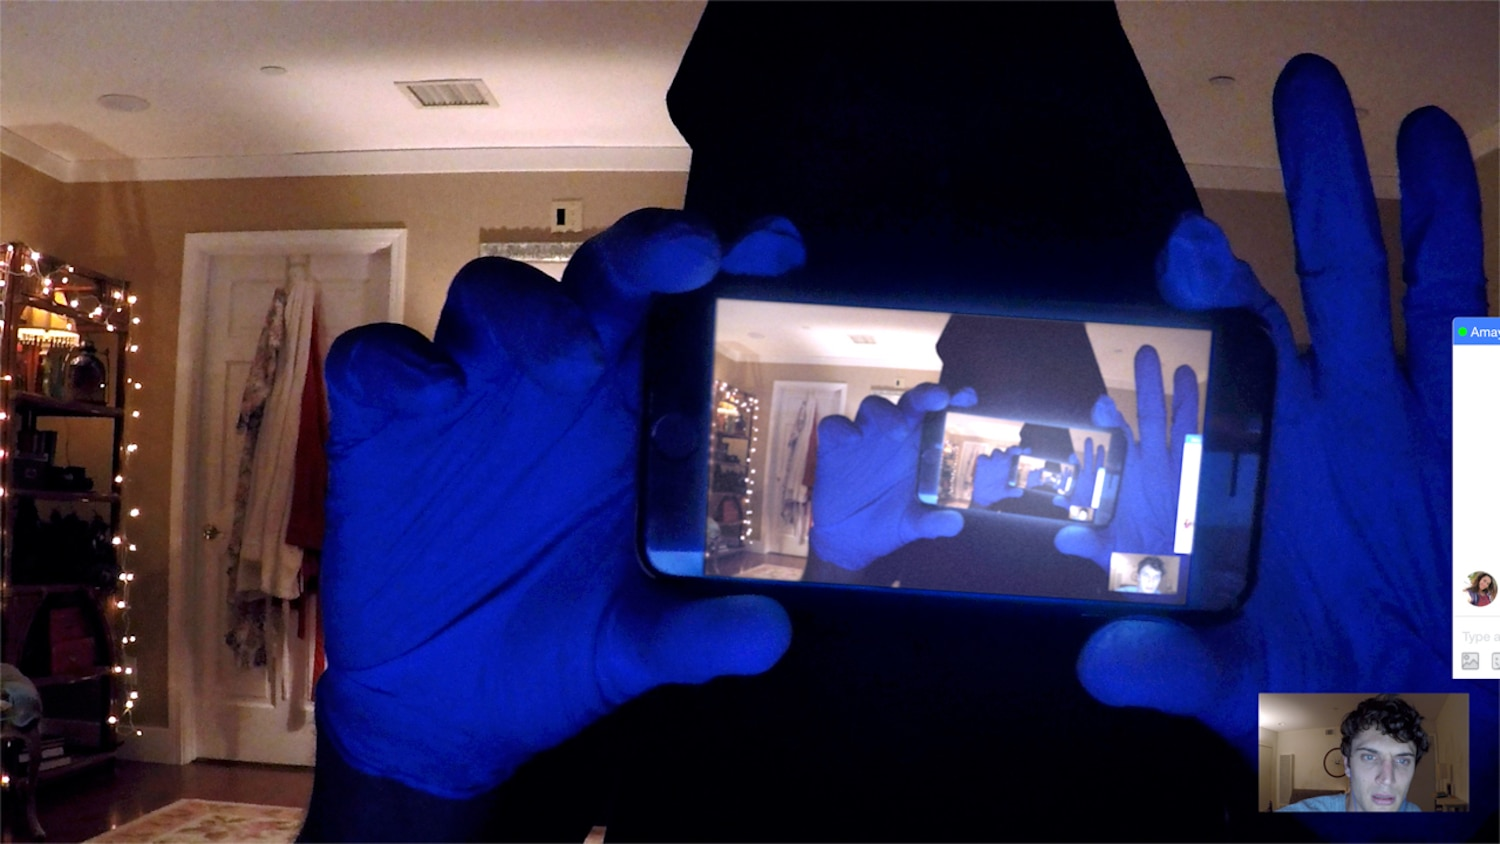 fantasia2018 Unfriended Dark Web 01 - Fantasia 2018: First Wave of Films Announced Including Bleach, Nightmare Cinema, and More